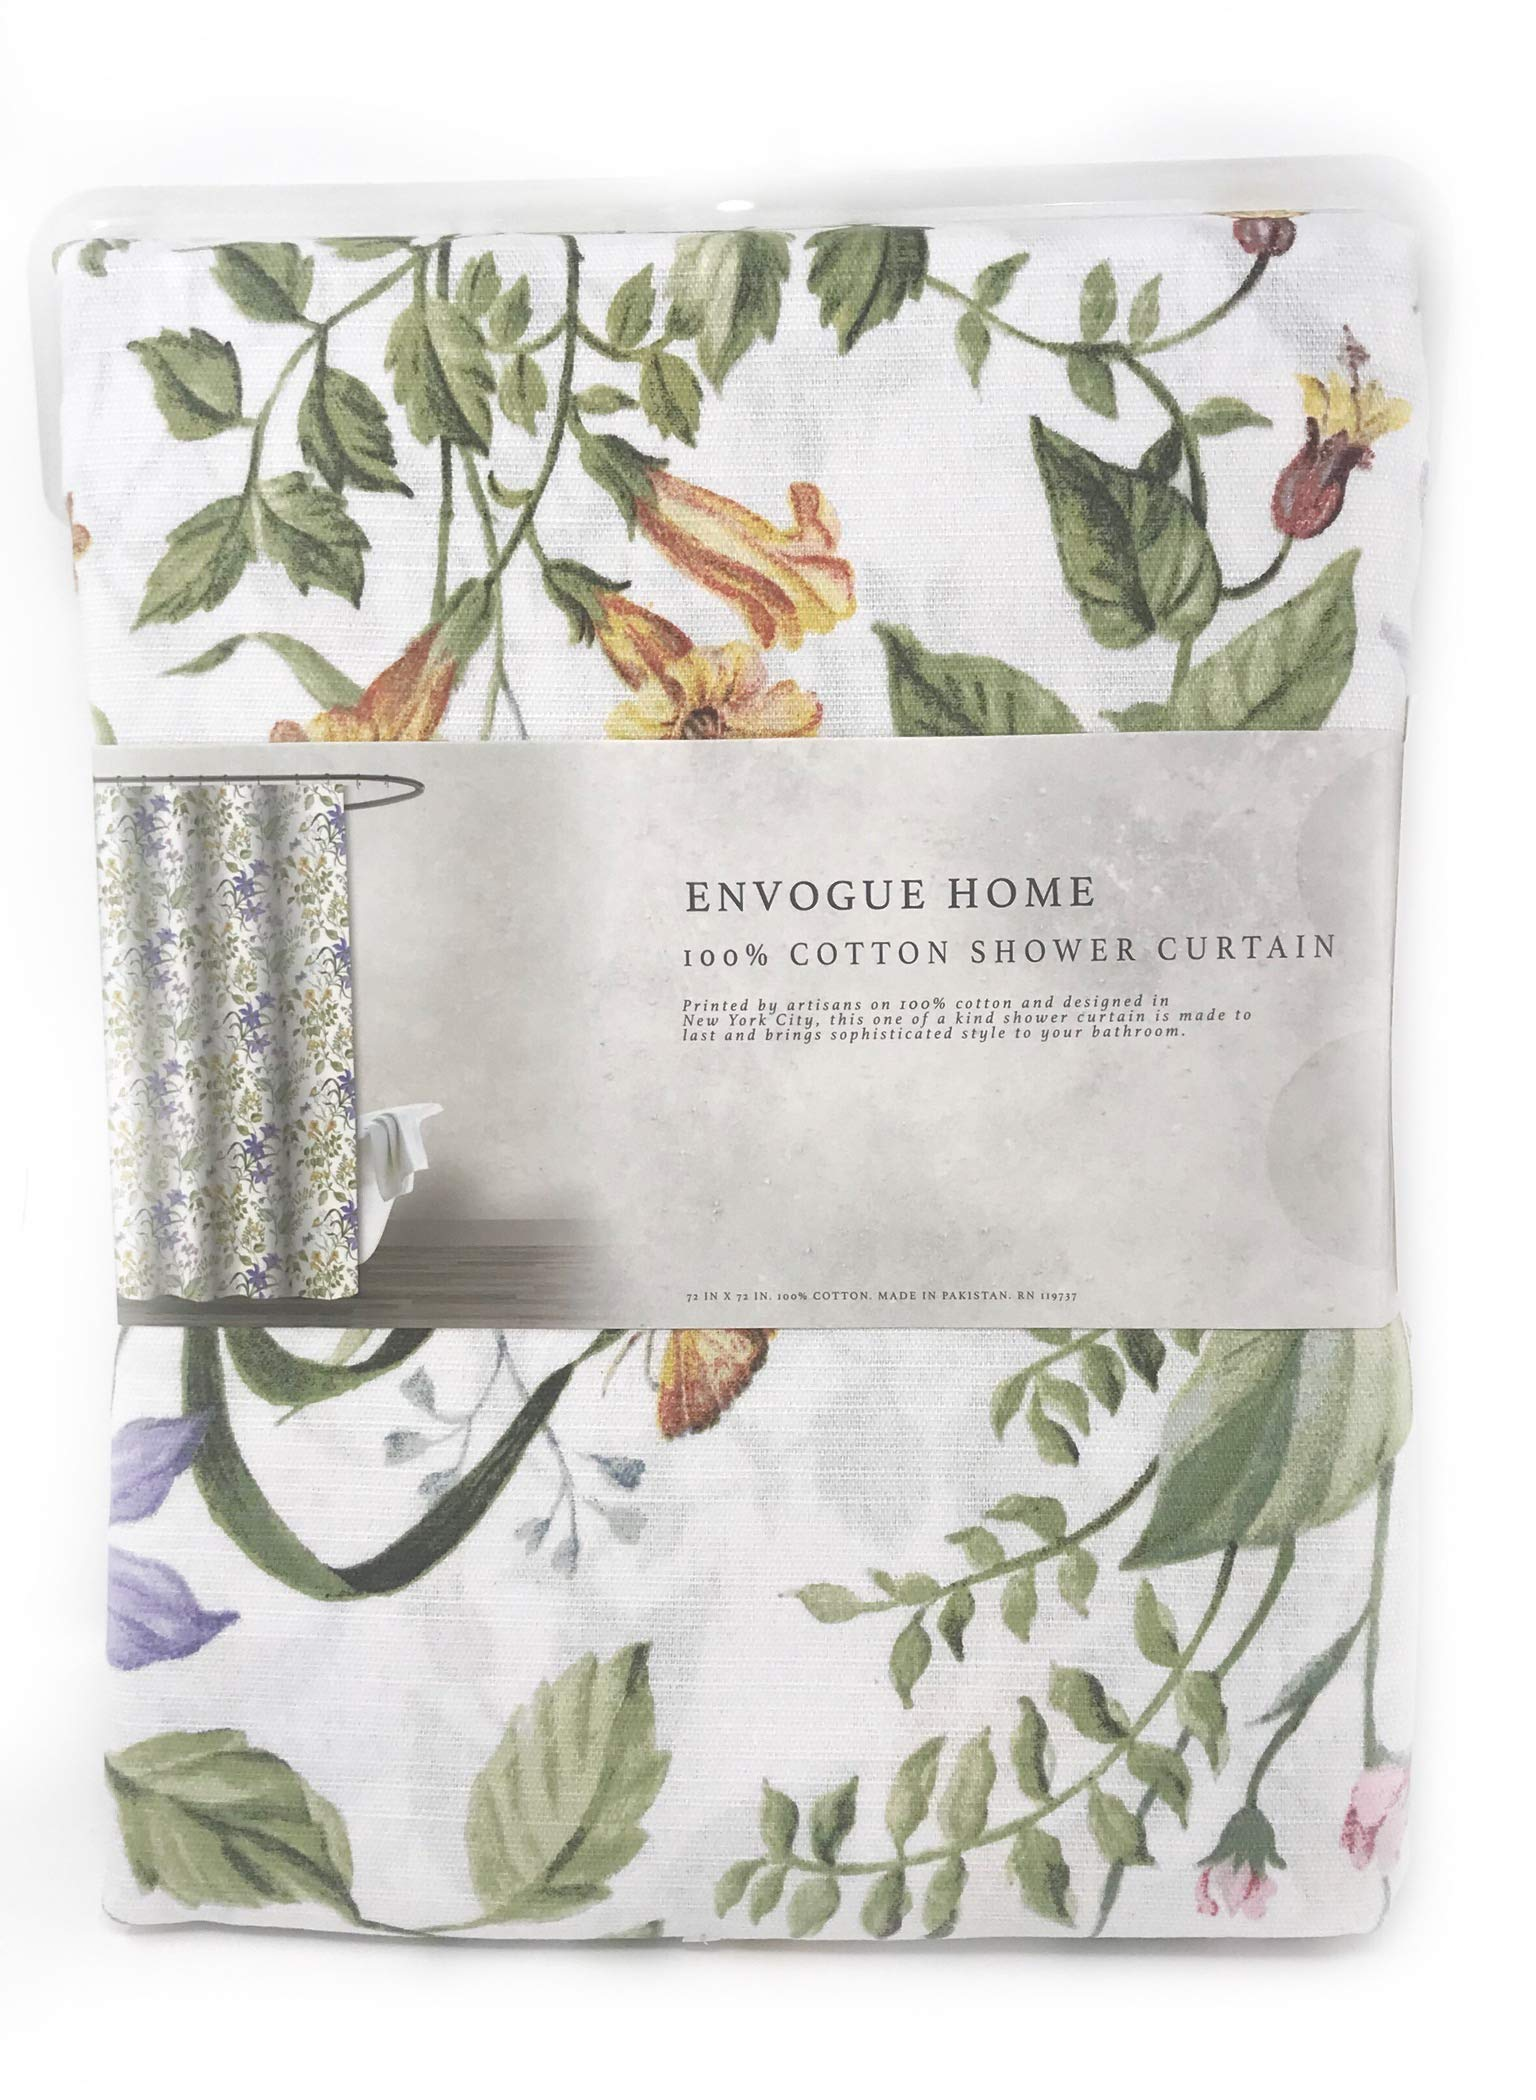 ENVOGUE French Country Provincial Wildflower Print Cotton Shower Curtain Modern Rustic Soft Vintage Floral Bird Butterly Botanical Nature Muted Color (Summer Meadow)